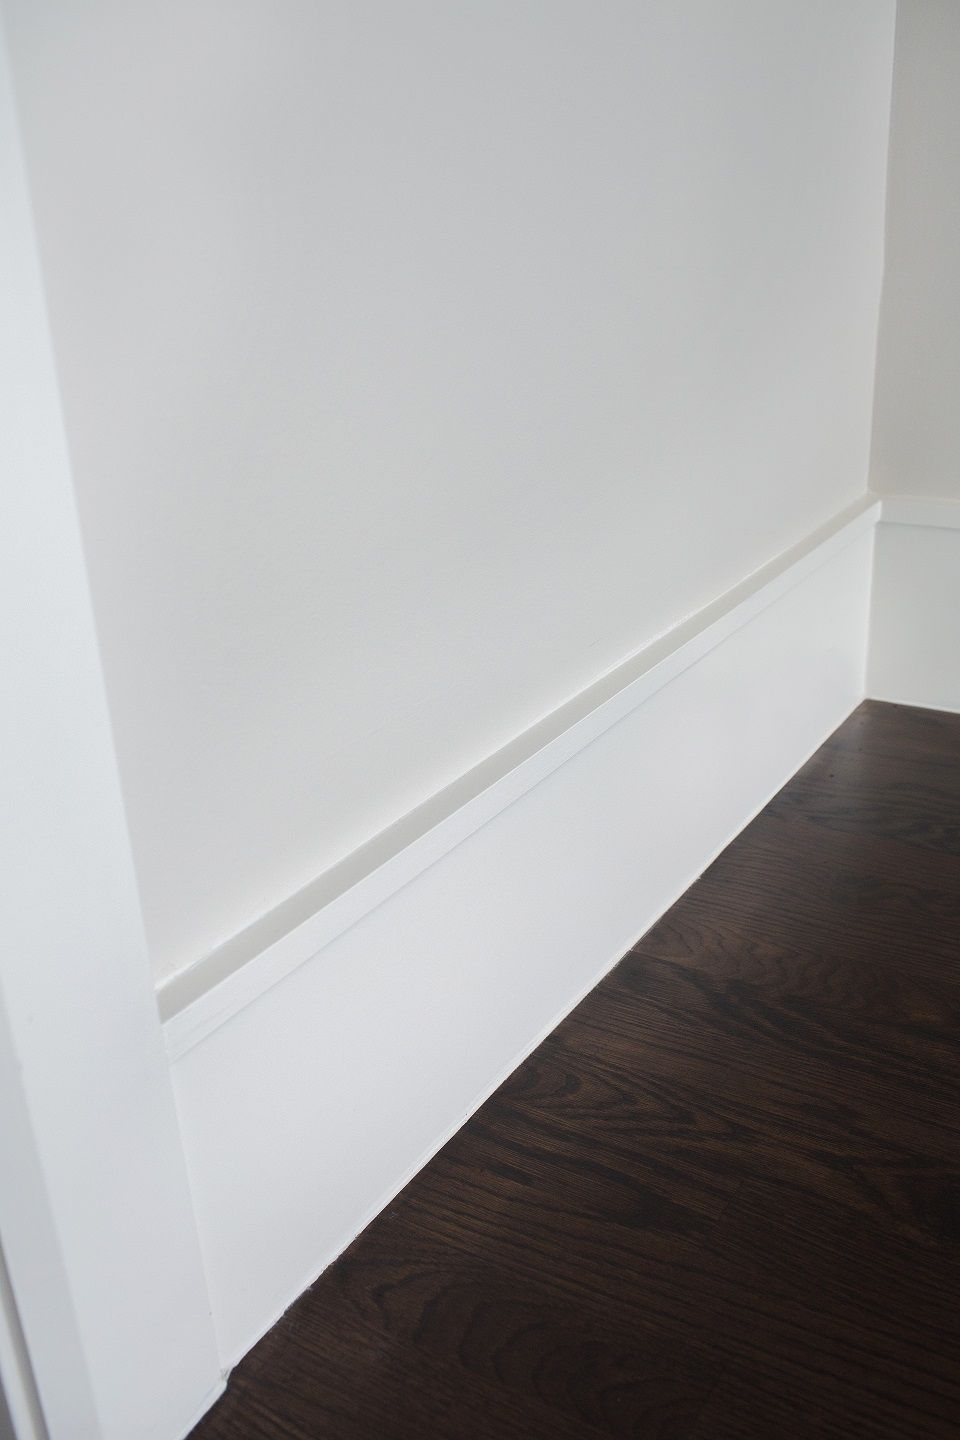 100 standard baseboard height ikea kitchen cabinets Baseboard height